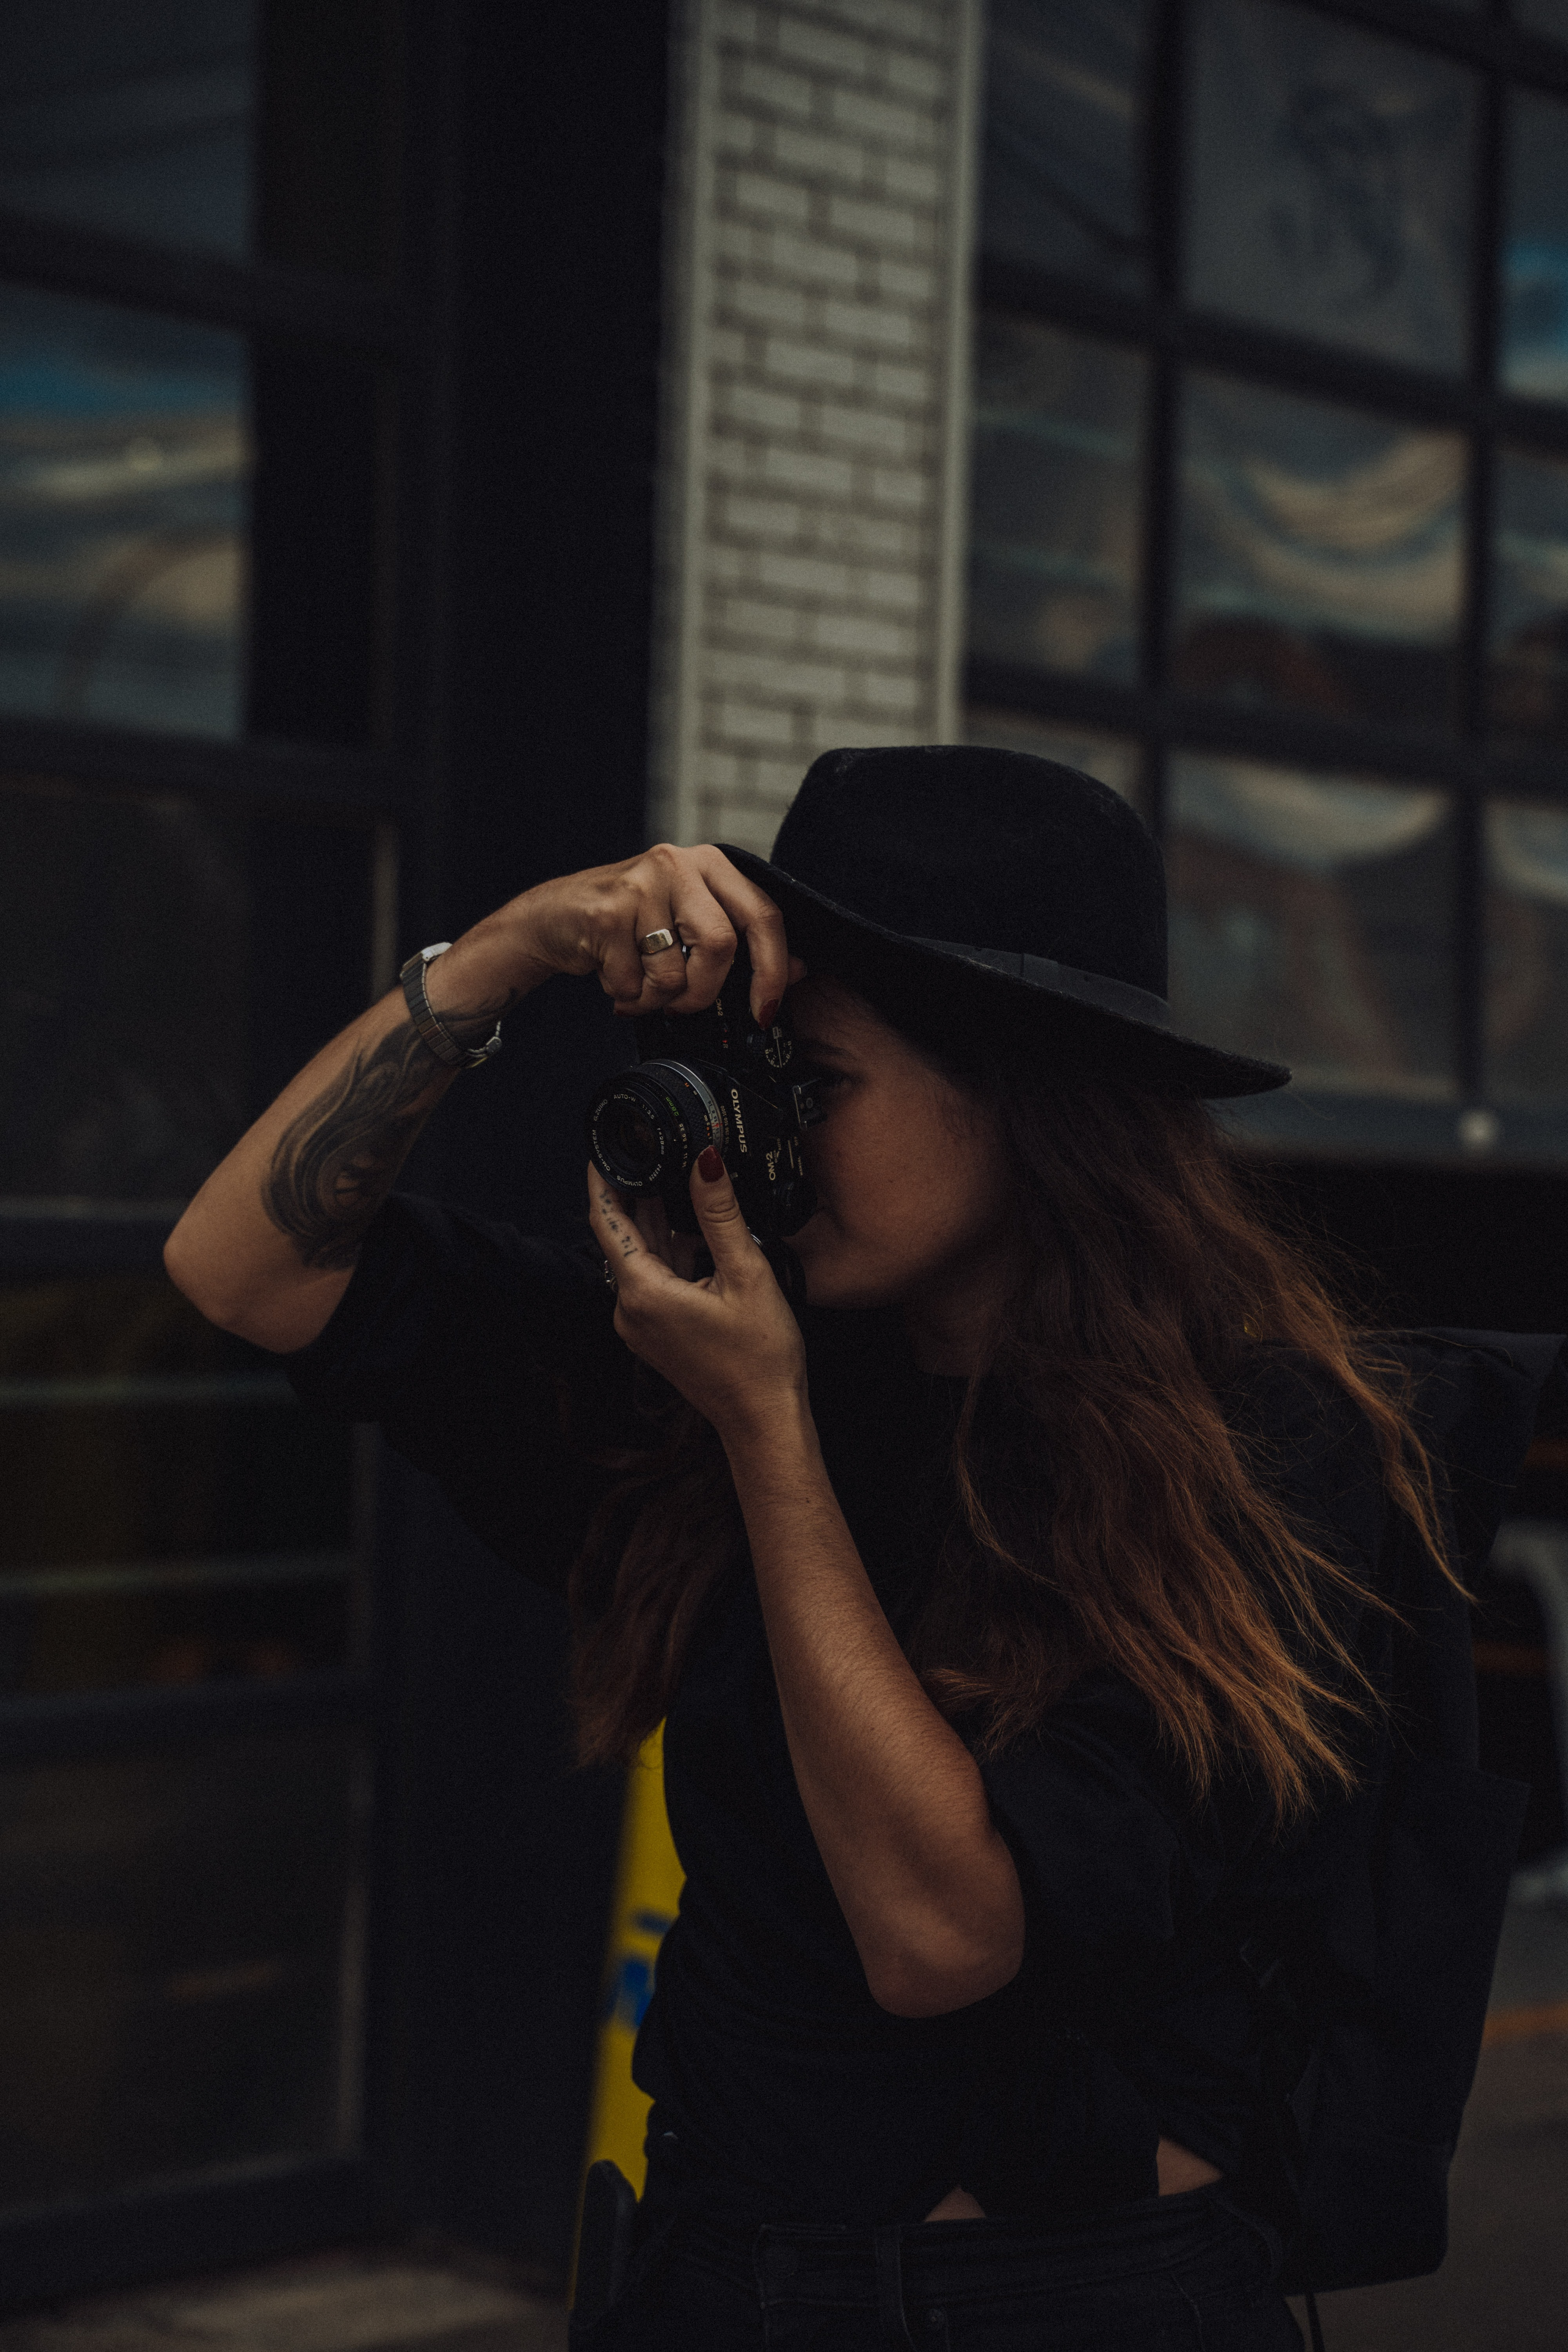 121636 download wallpaper Miscellanea, Miscellaneous, Girl, Tattoo, Photographer, Camera, Hat screensavers and pictures for free